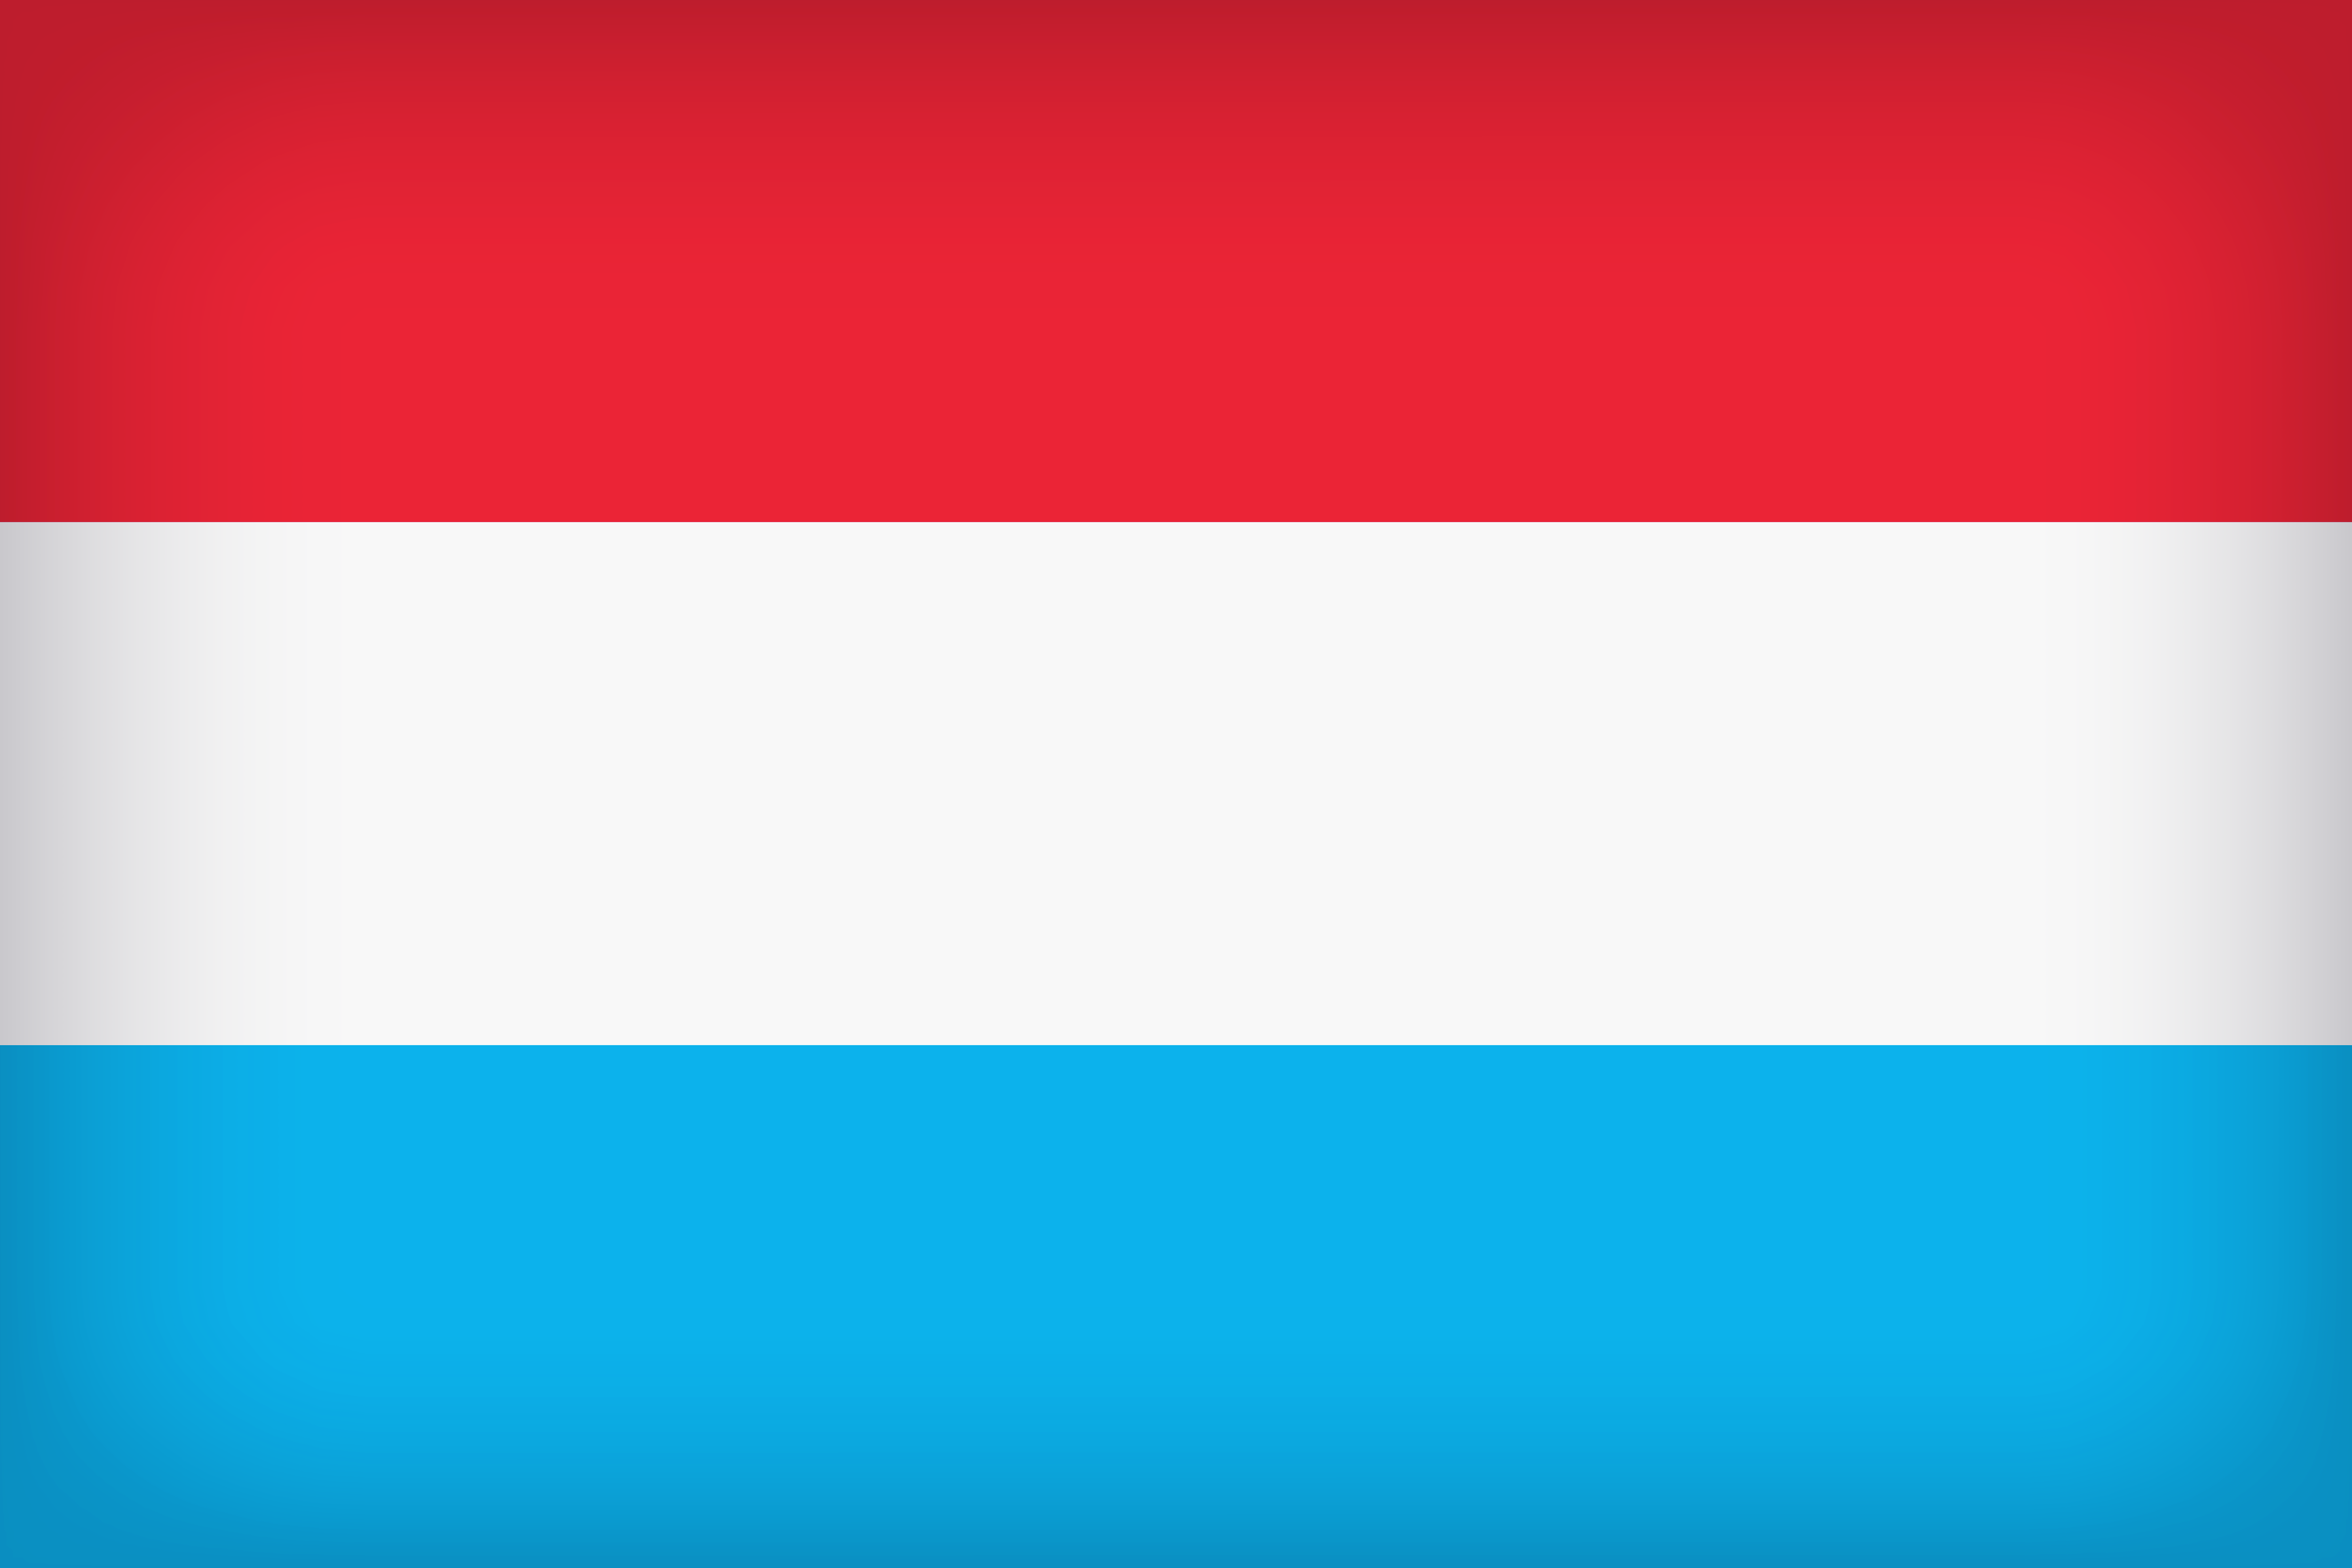 The official flag of the Luxembourg